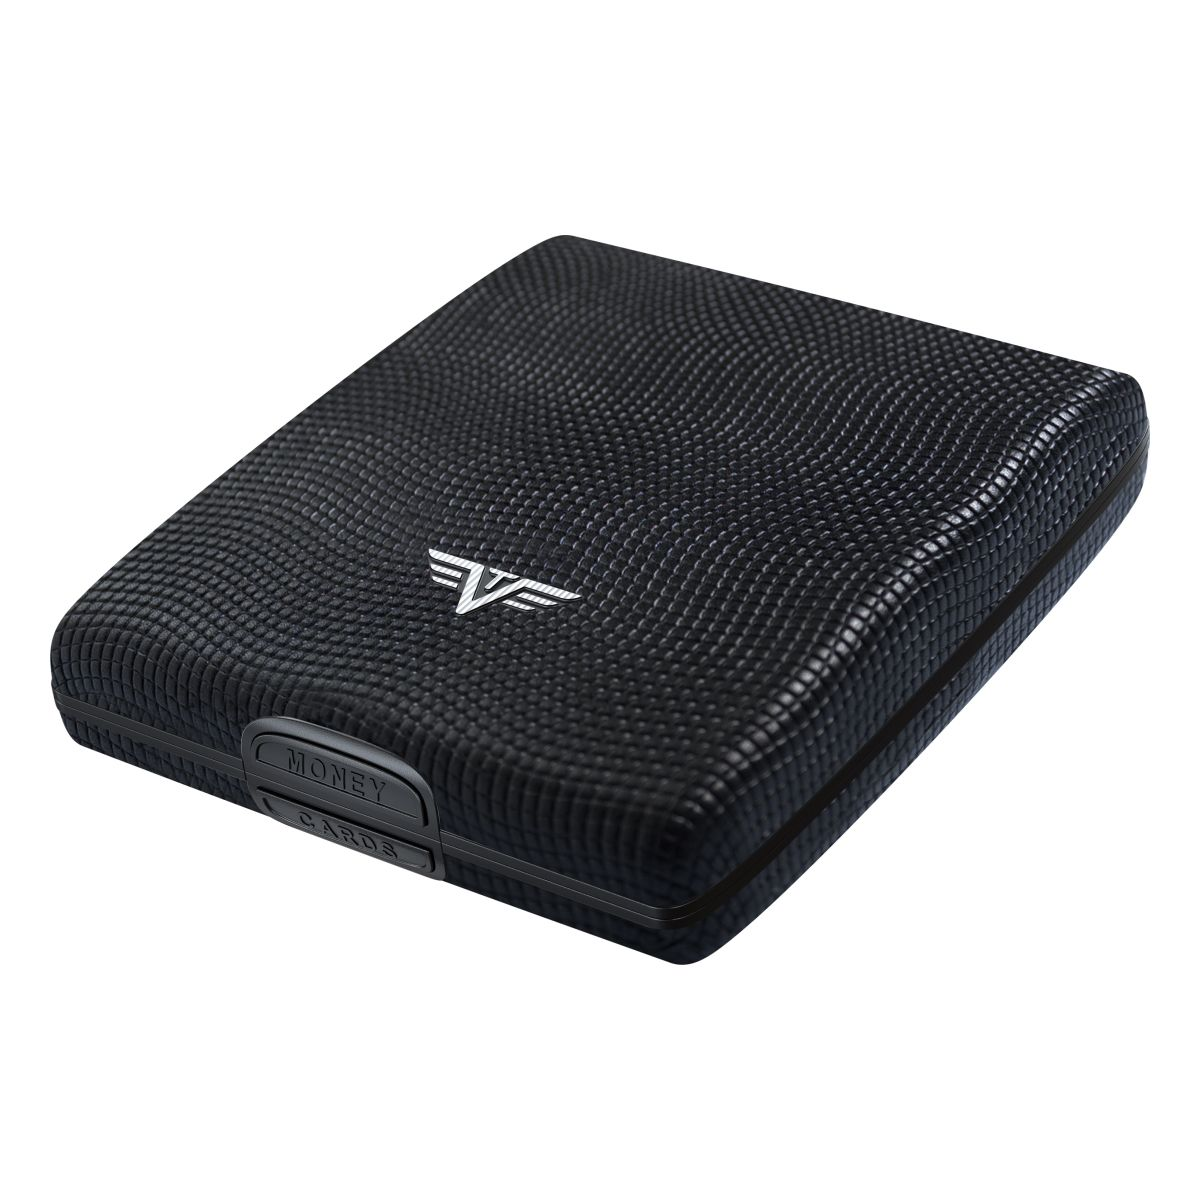 Aluminum Wallet Beluga - Money & Cards - Leather Line - Lizard Black